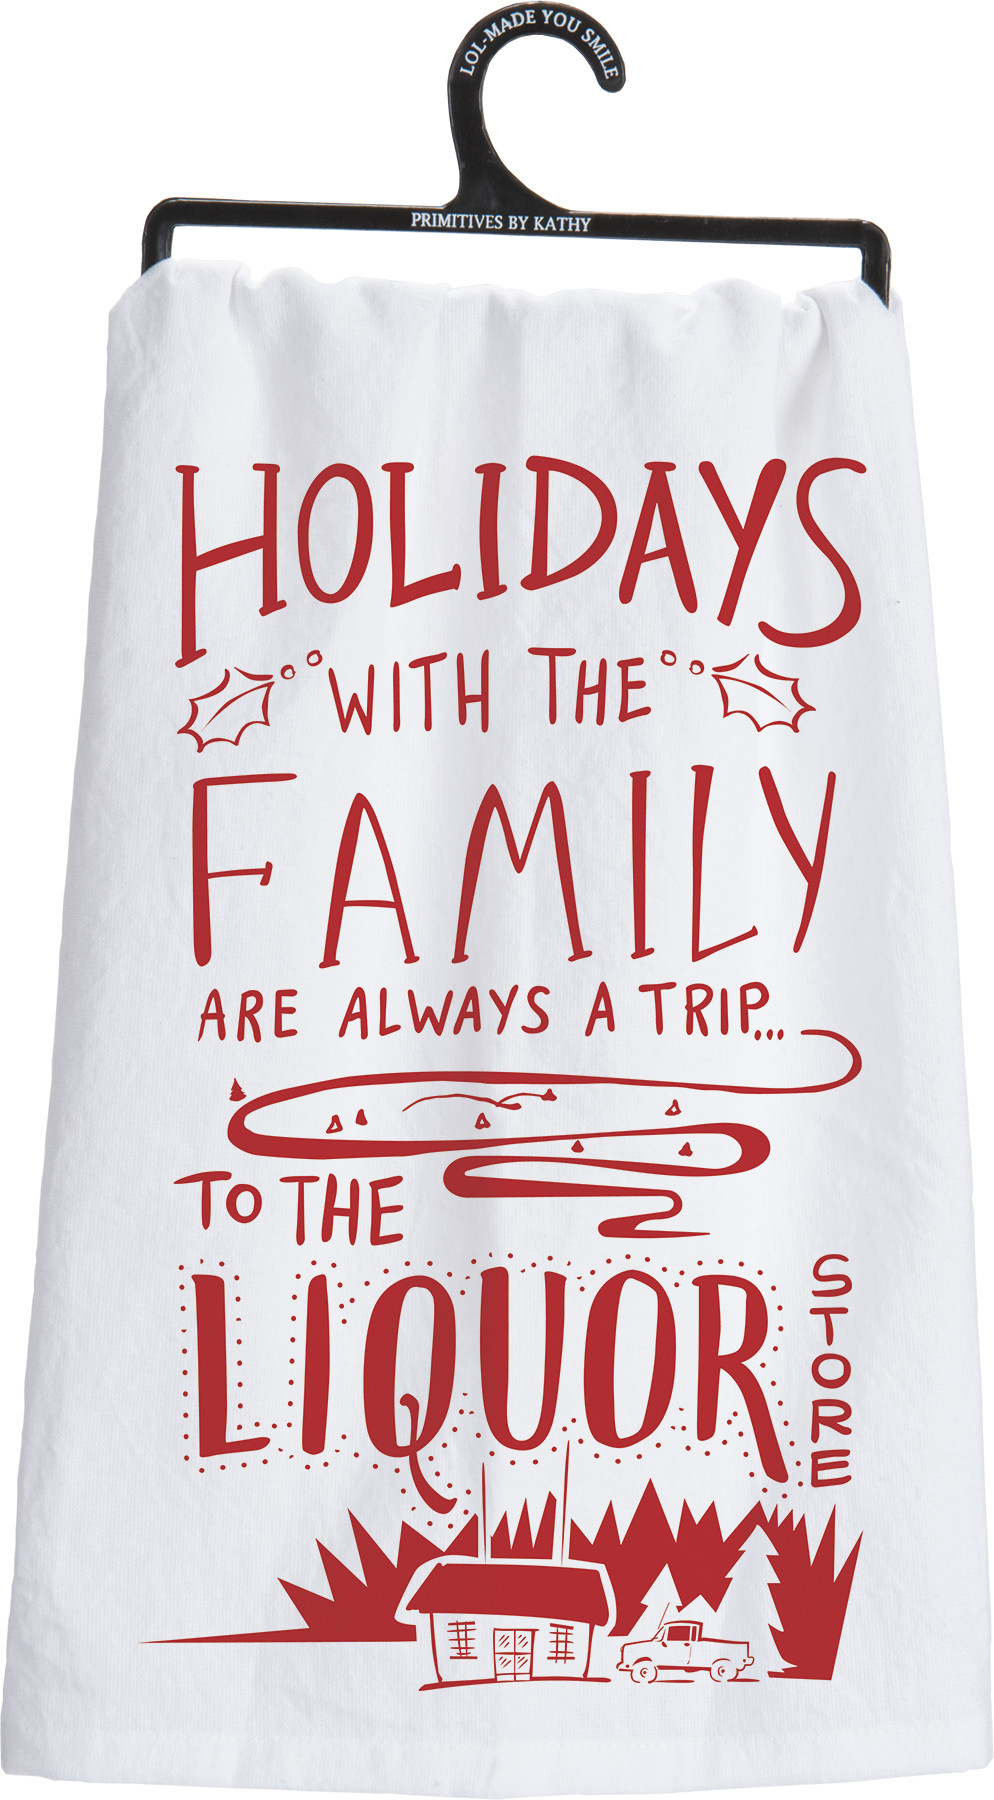 Primitives By Kathy 25536 LOL Made You Smile Holiday Dish Towel 28 x 28 The Elf